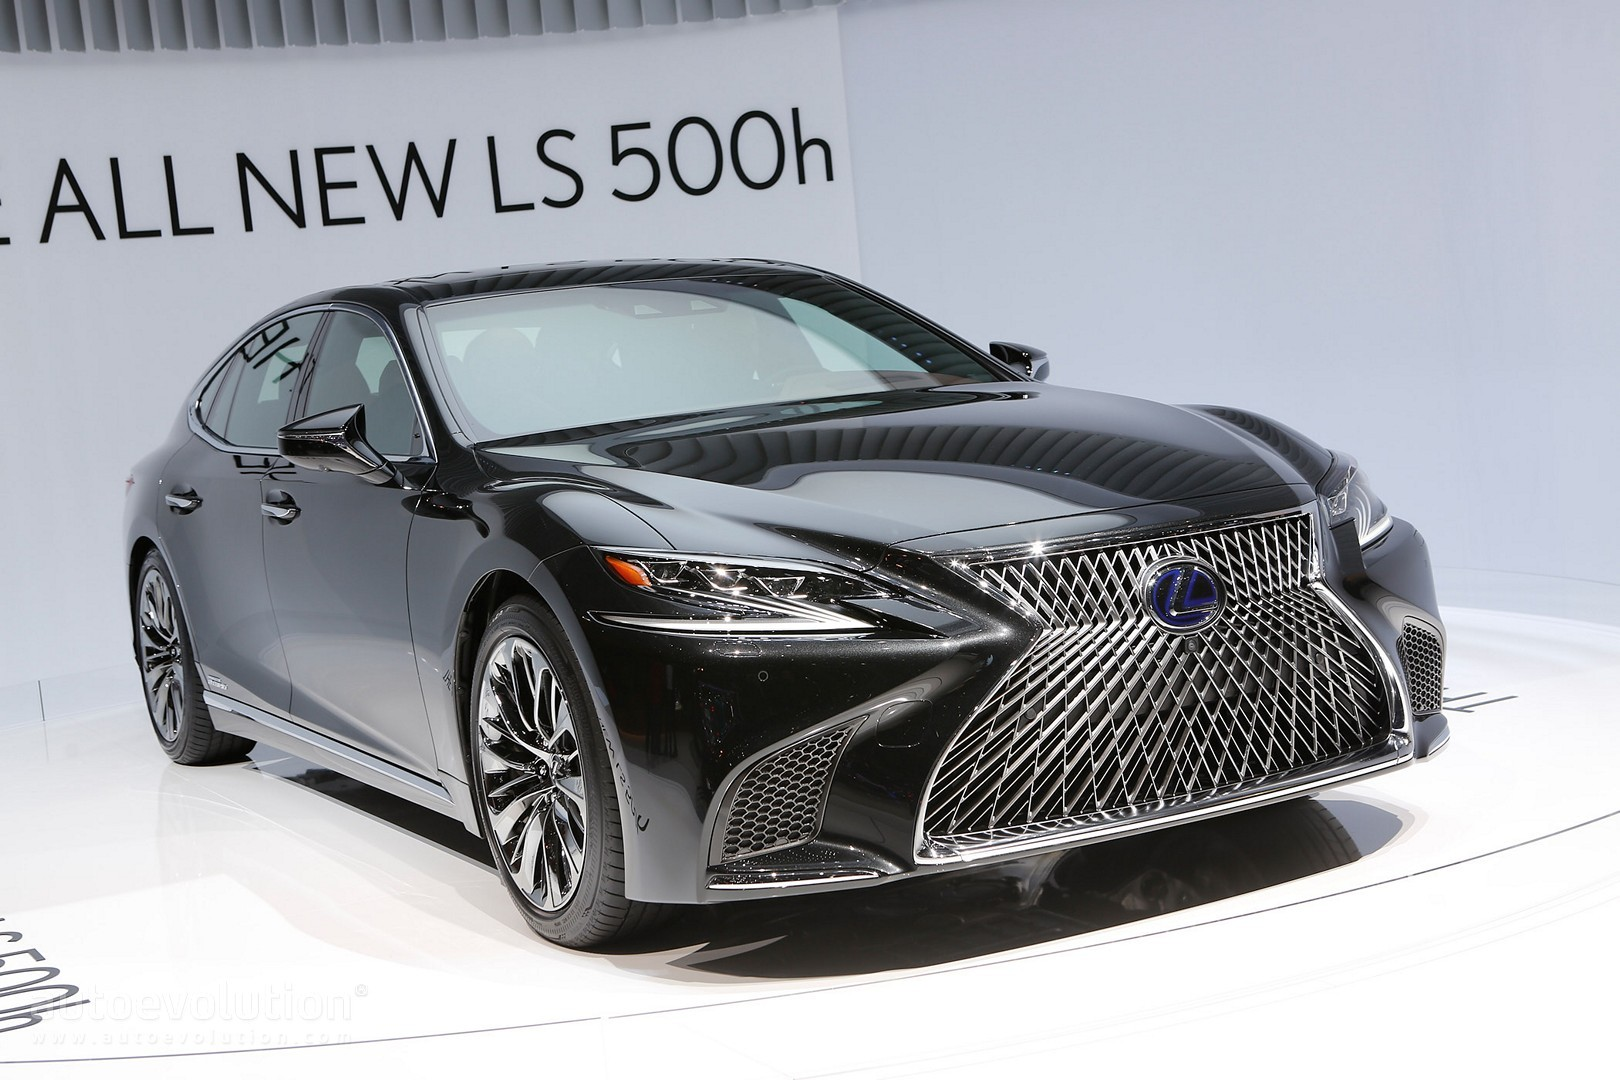 the all new 2018 lexus ls 500h gets revealed in geneva autoevolution. Black Bedroom Furniture Sets. Home Design Ideas